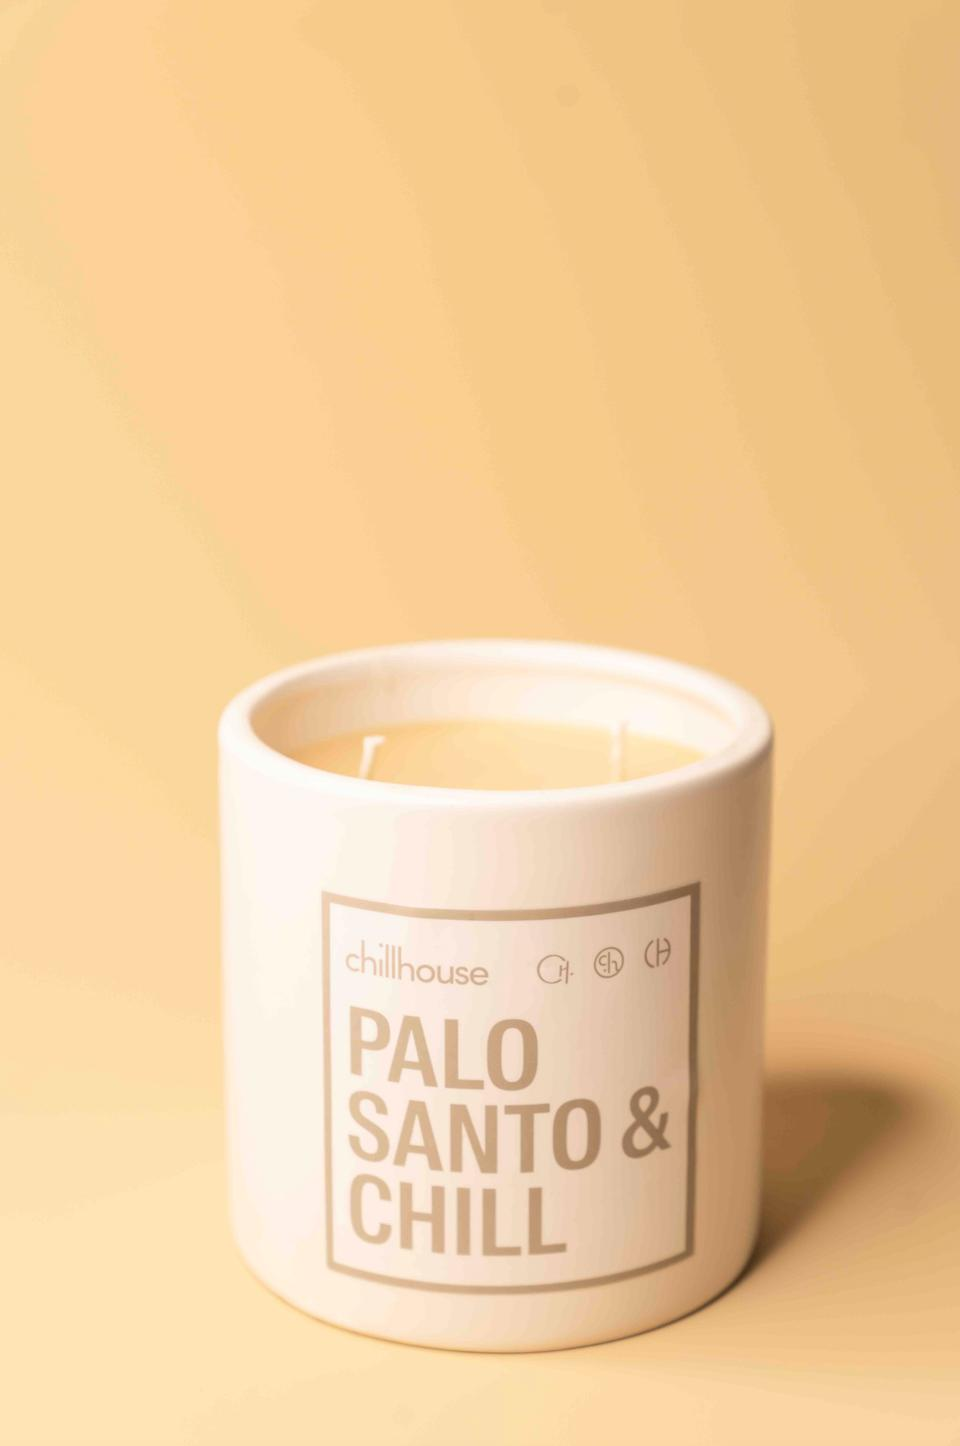 Chillhouse Palo Santo & Chill Candle.